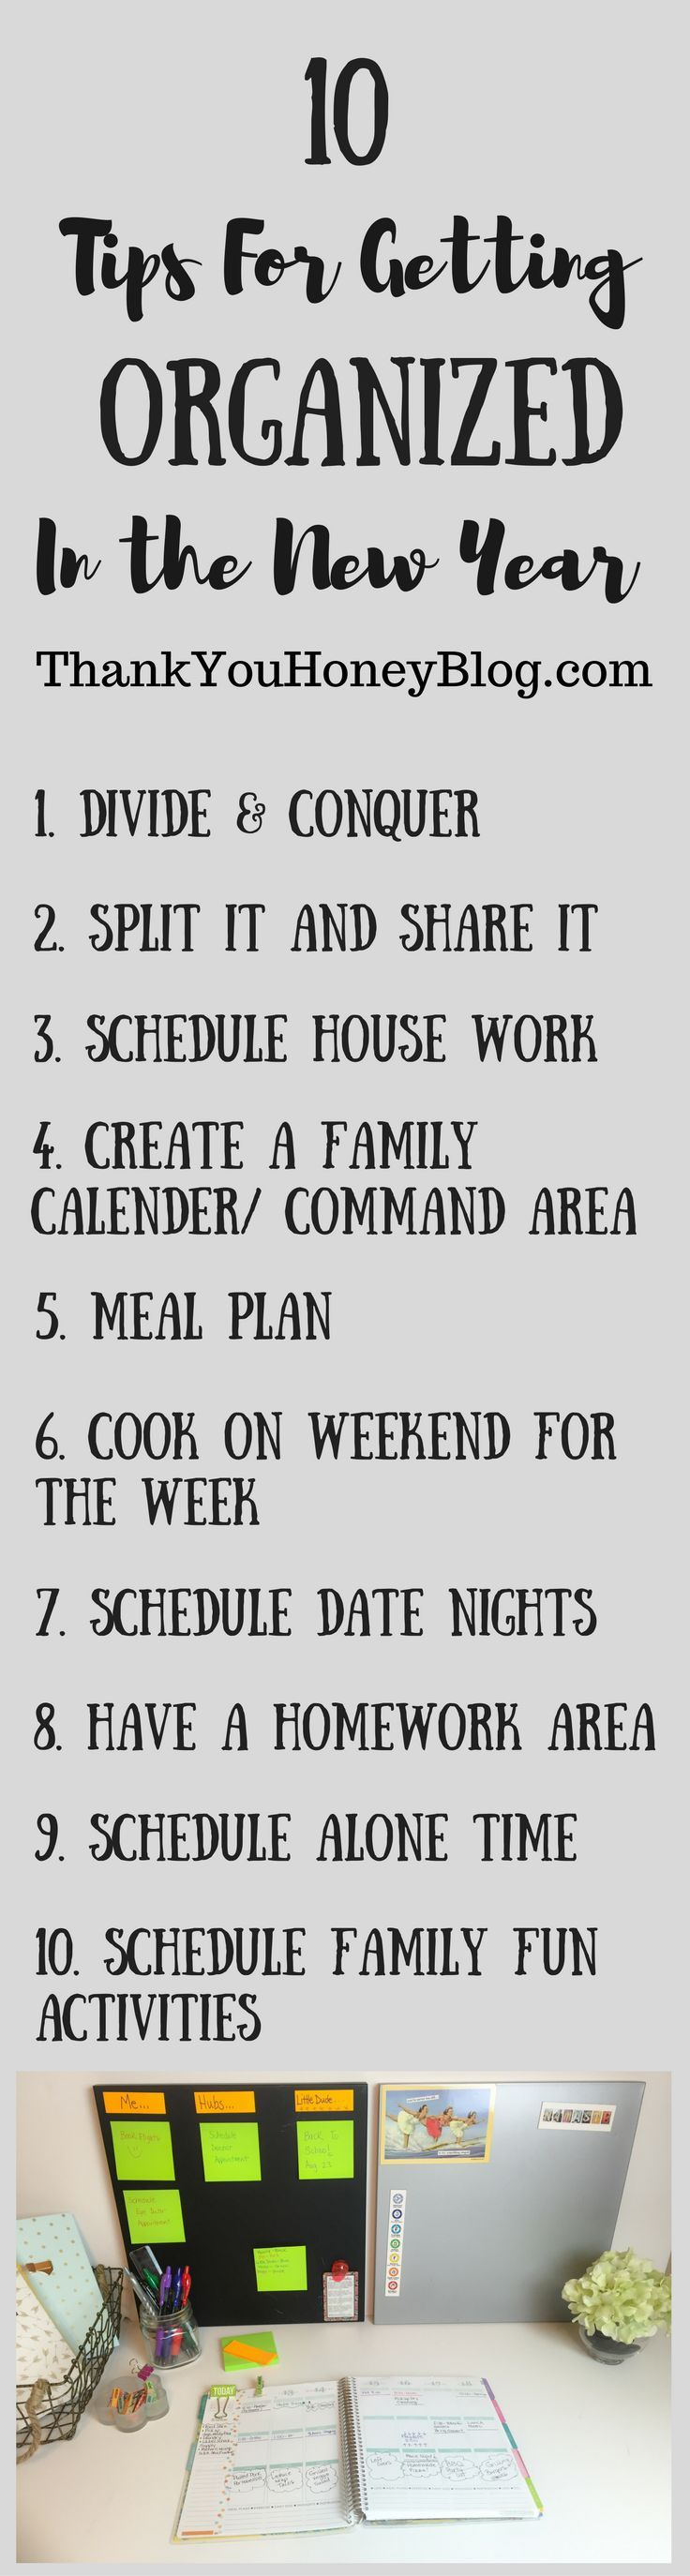 Here are 10 Tips for Getting Organized in the New Year, so you juggle and conquer it all! Read the whole article at ThankYouHoneyBlog.com. Click through & PIN IT! Follow Us on Pinterest + Subscribe to ThankYouHoneyBlog.com, 10 Tips for Getting Organized, New Year Resolutions, Goals, New Year, Tips, Printable, Organization, Goal Setting, Resolutions,Family, Organized